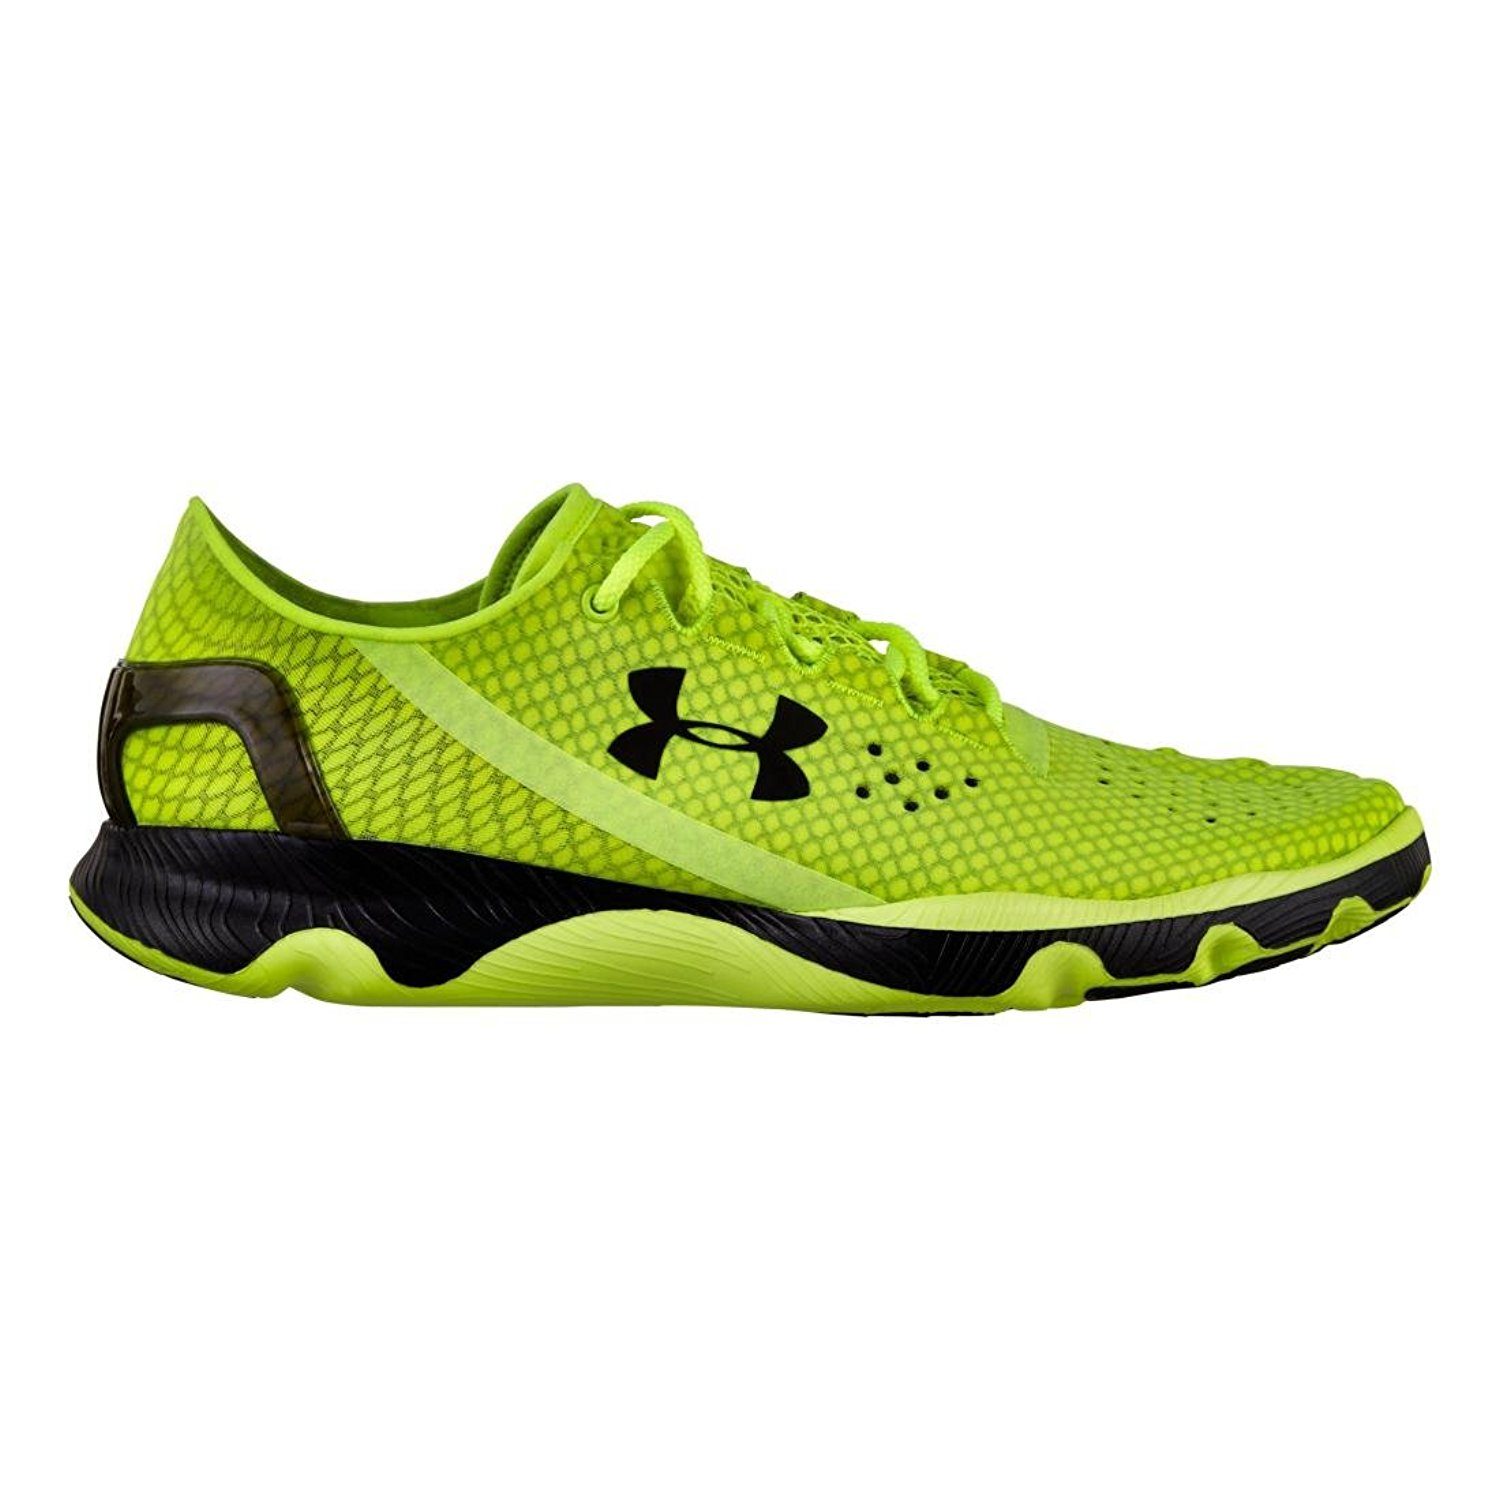 where can i get under armour cheap